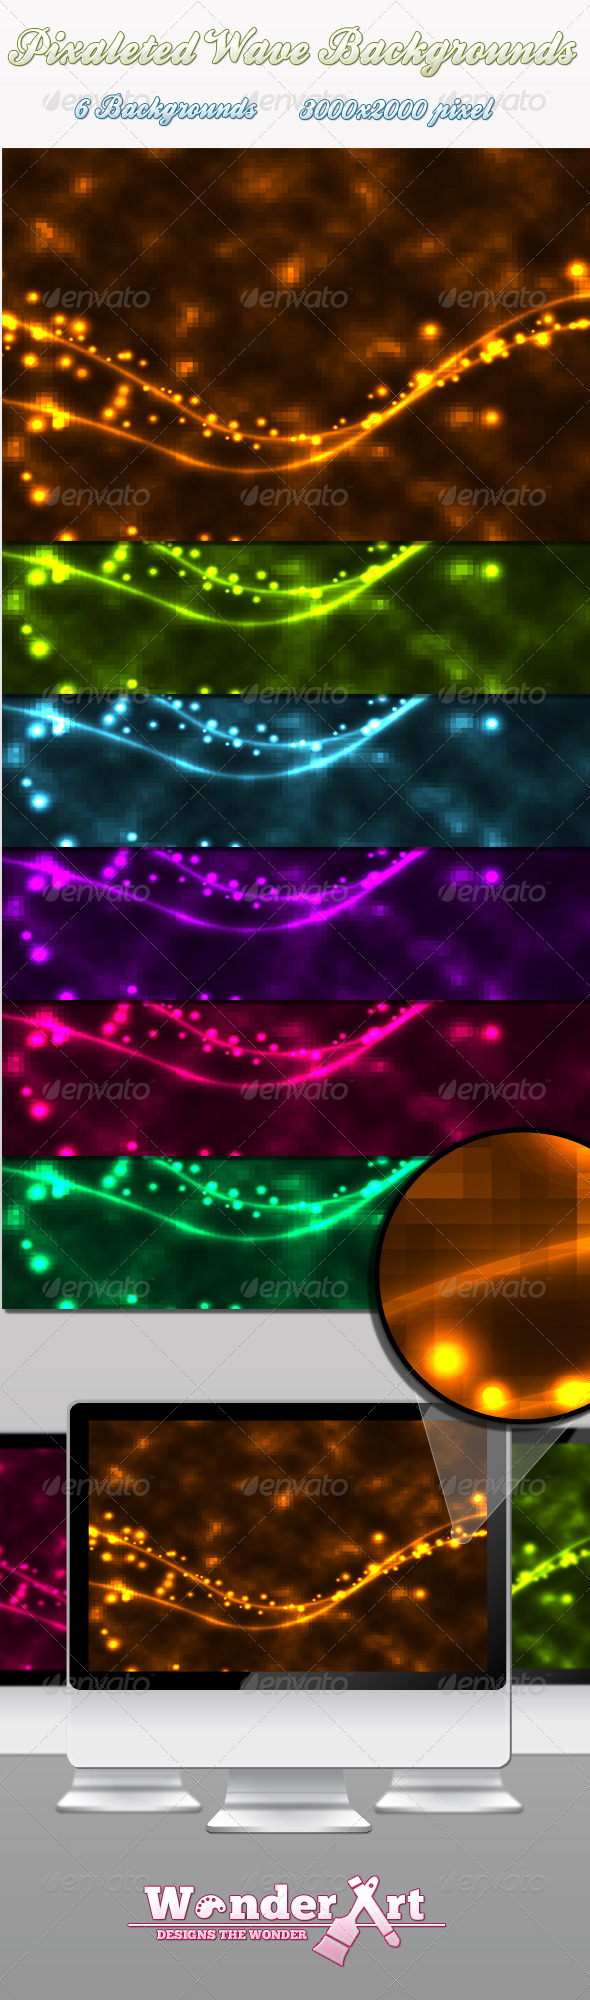 Pixaleted Glowing Background Pack - Abstract Backgrounds